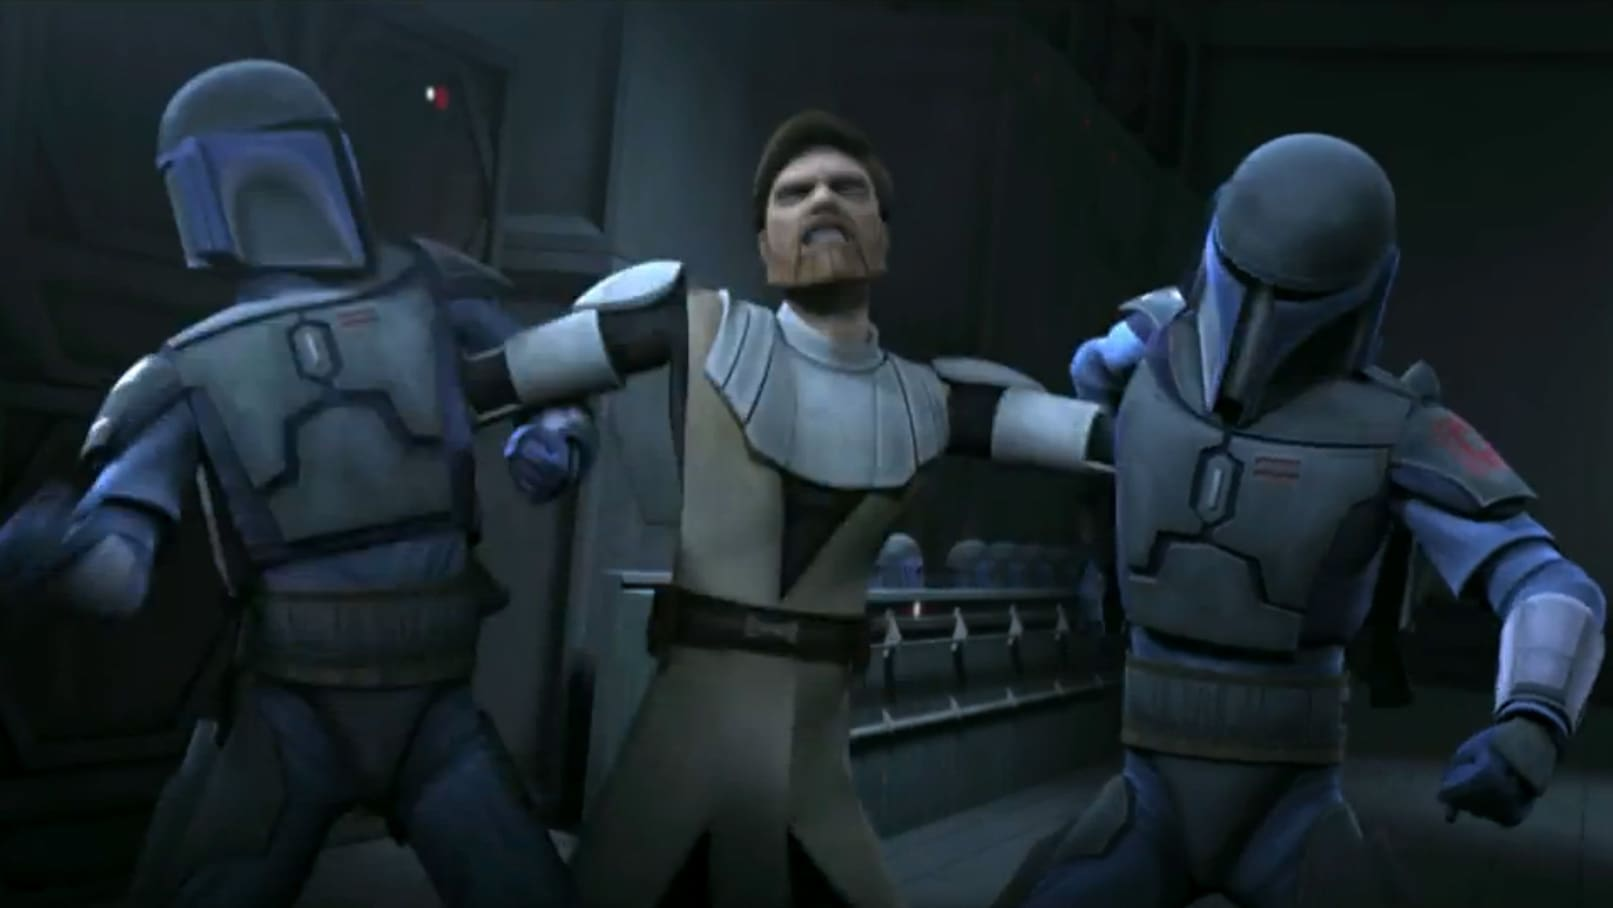 Death watch starwars death watch attack biocorpaavc Image collections